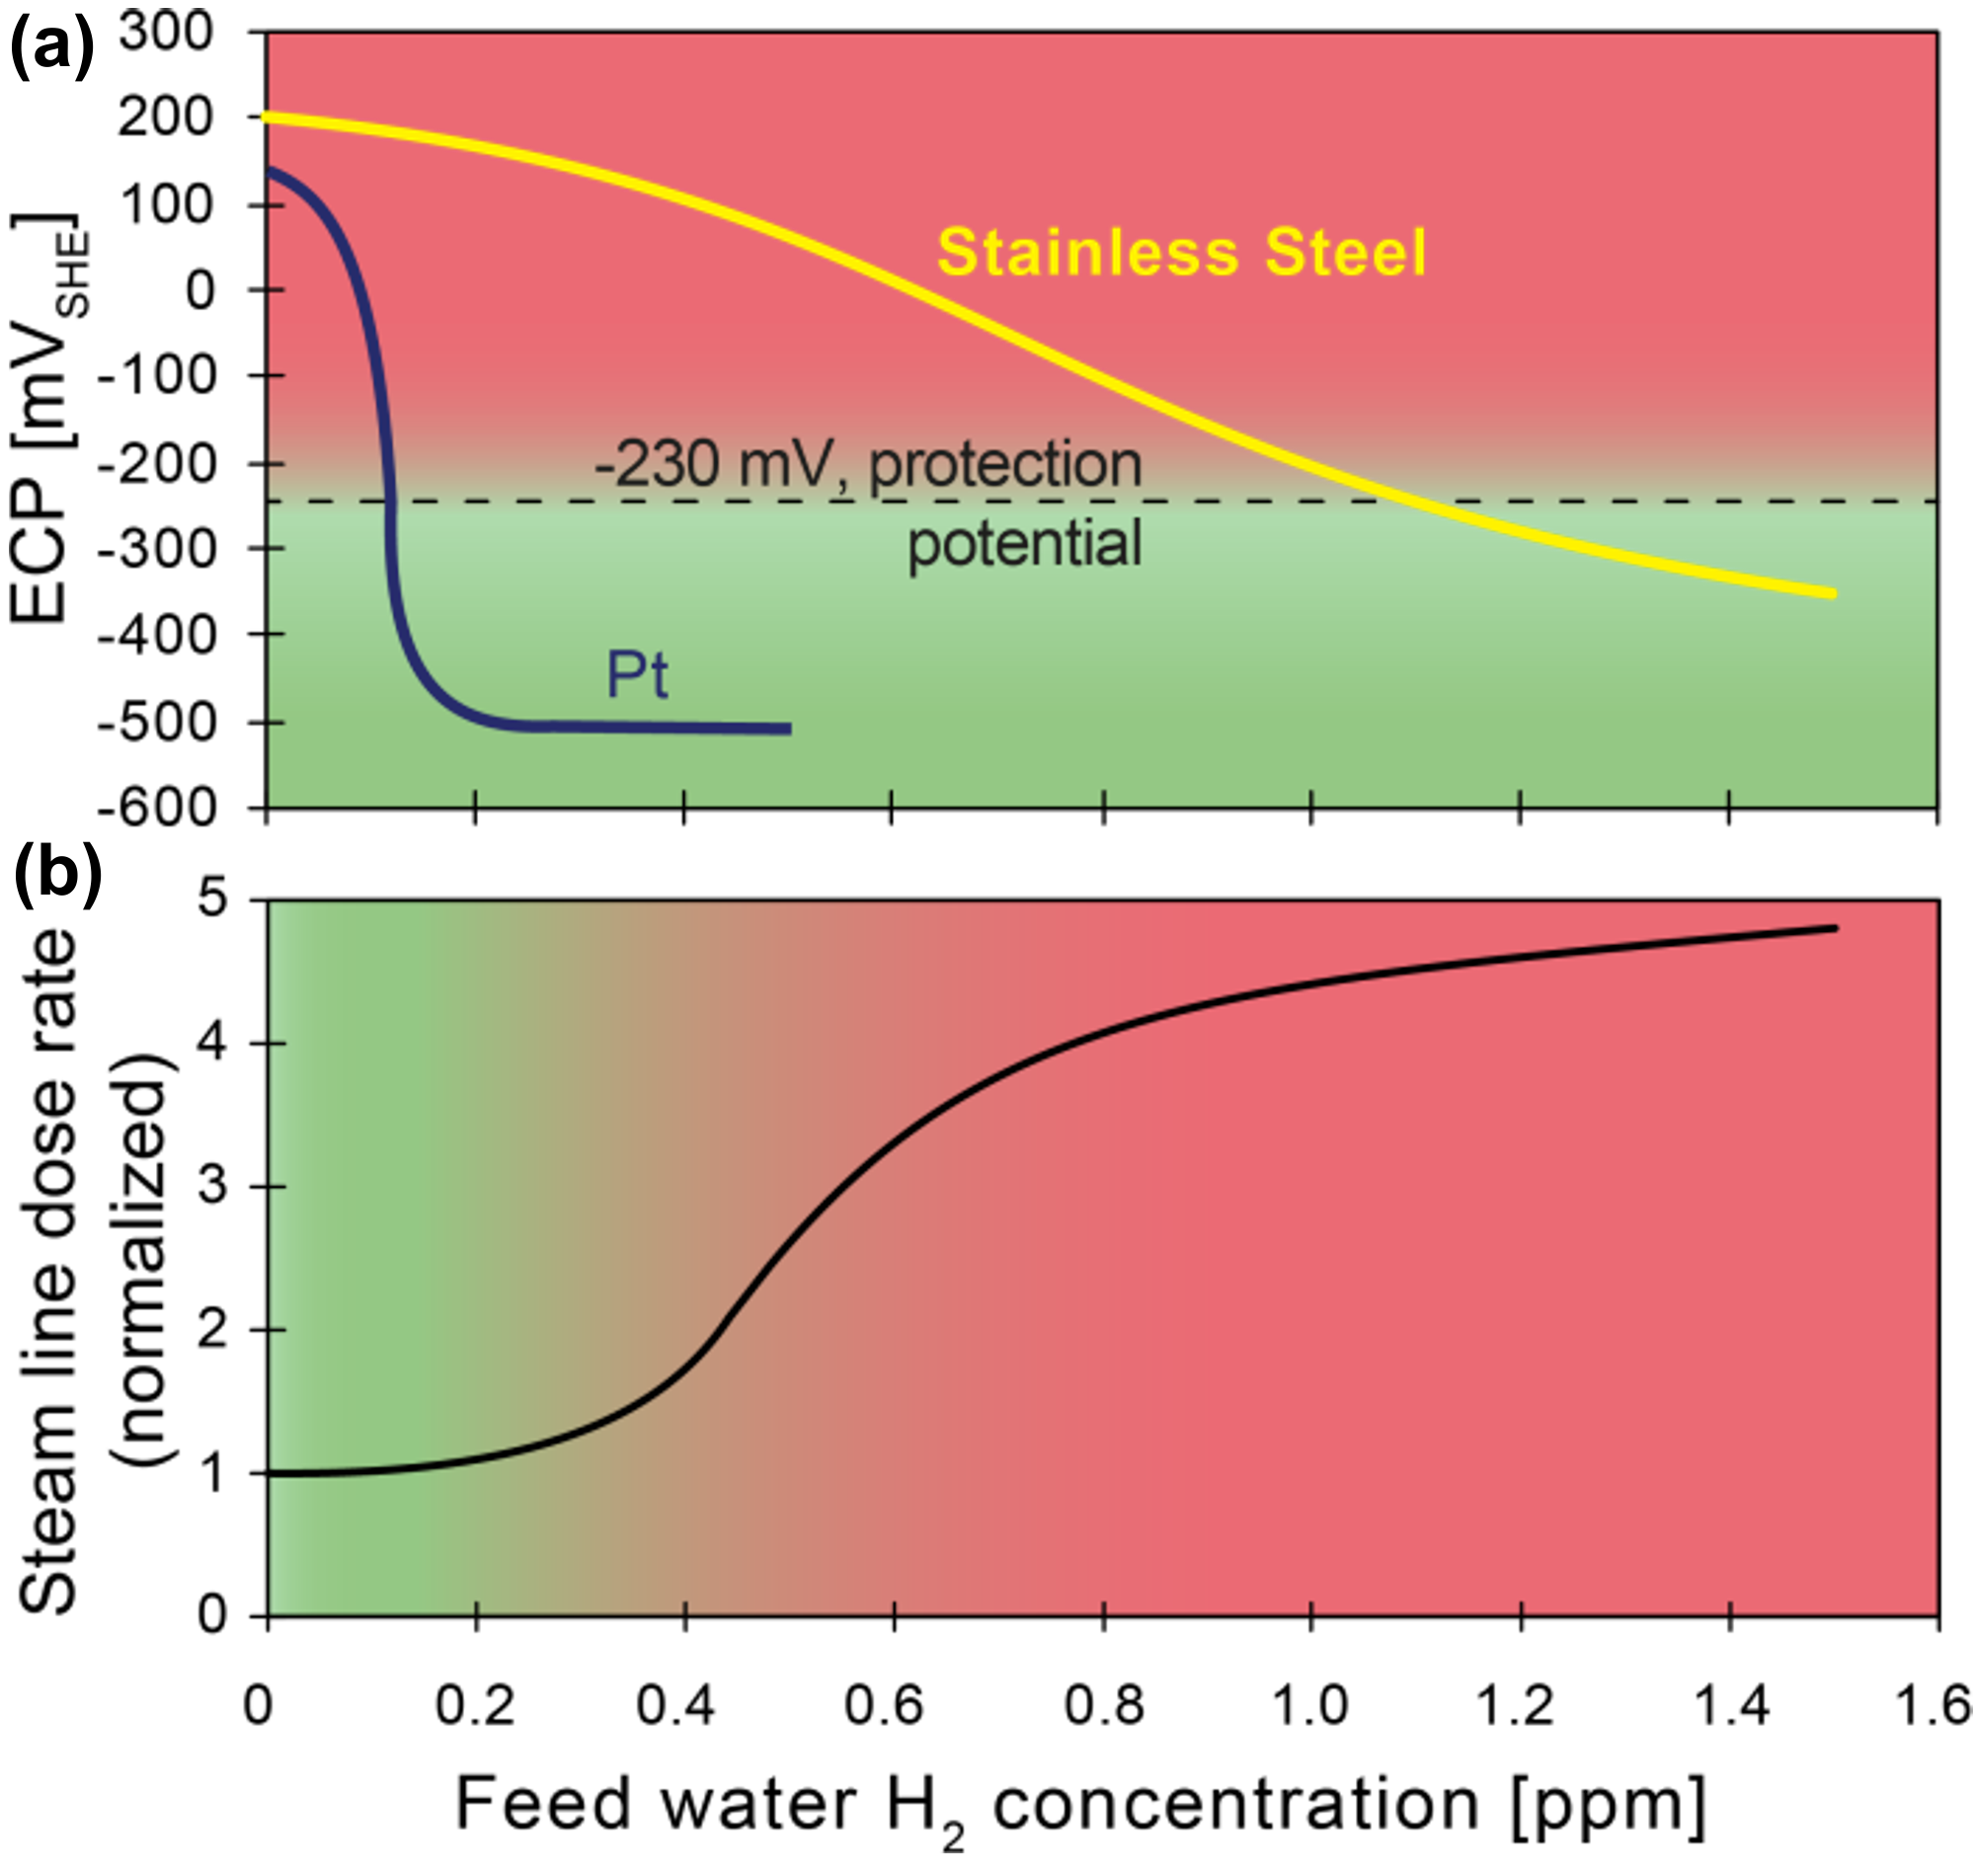 Figure 1: Effect of feed water H<sub>2</sub> concentration on (a) the electrochemical corrosion potential (ECP) of stainless steel and Pt, and (b) on the steam line dose rate, (SHE = standard hydrogen electrode scale).